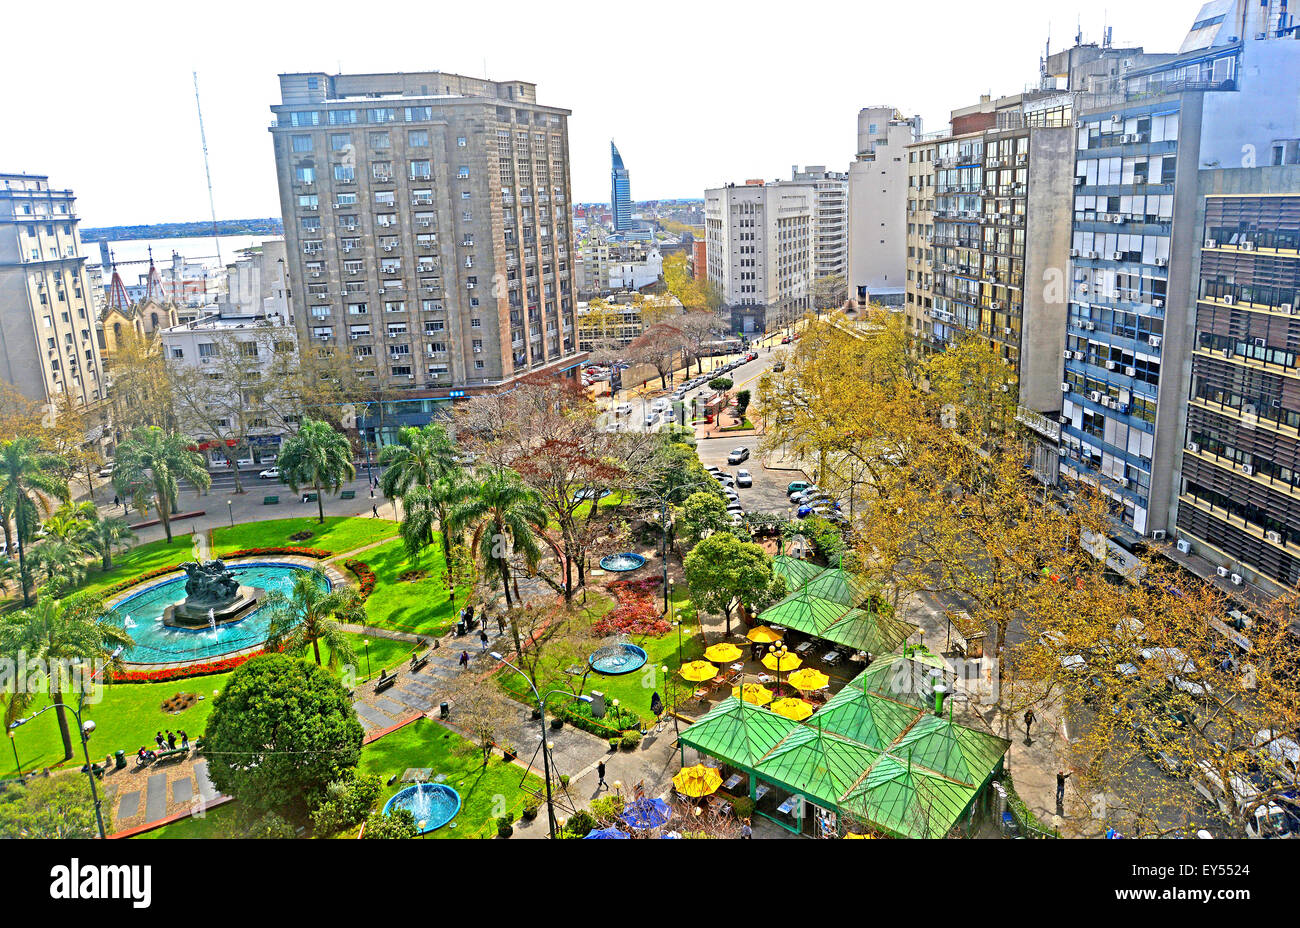 Plaza Fabini Montevideo Uruguay Stock Photo